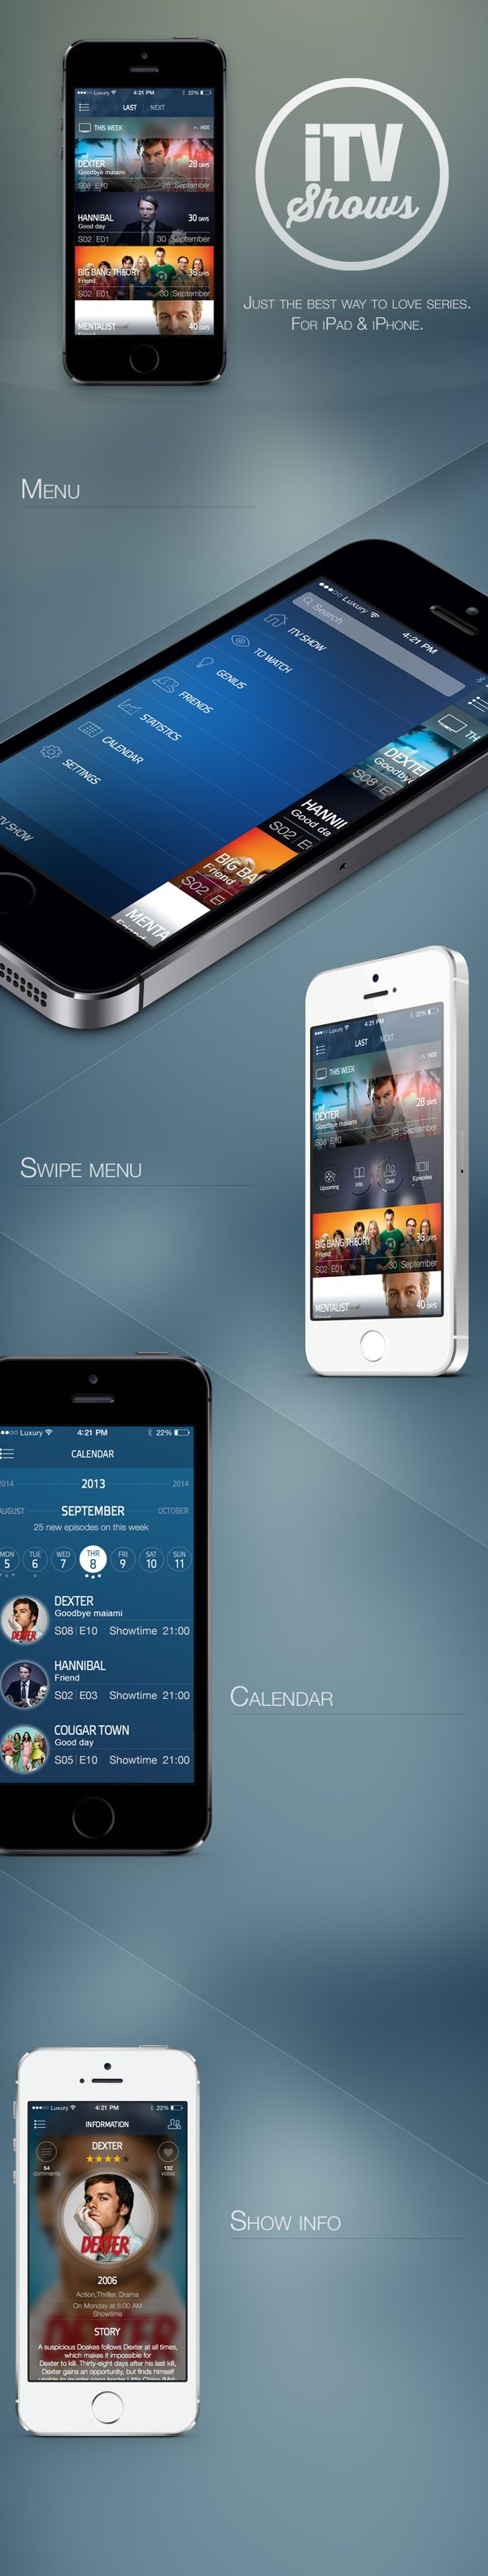 iTVShow App by Sergey Skidan, via Behance